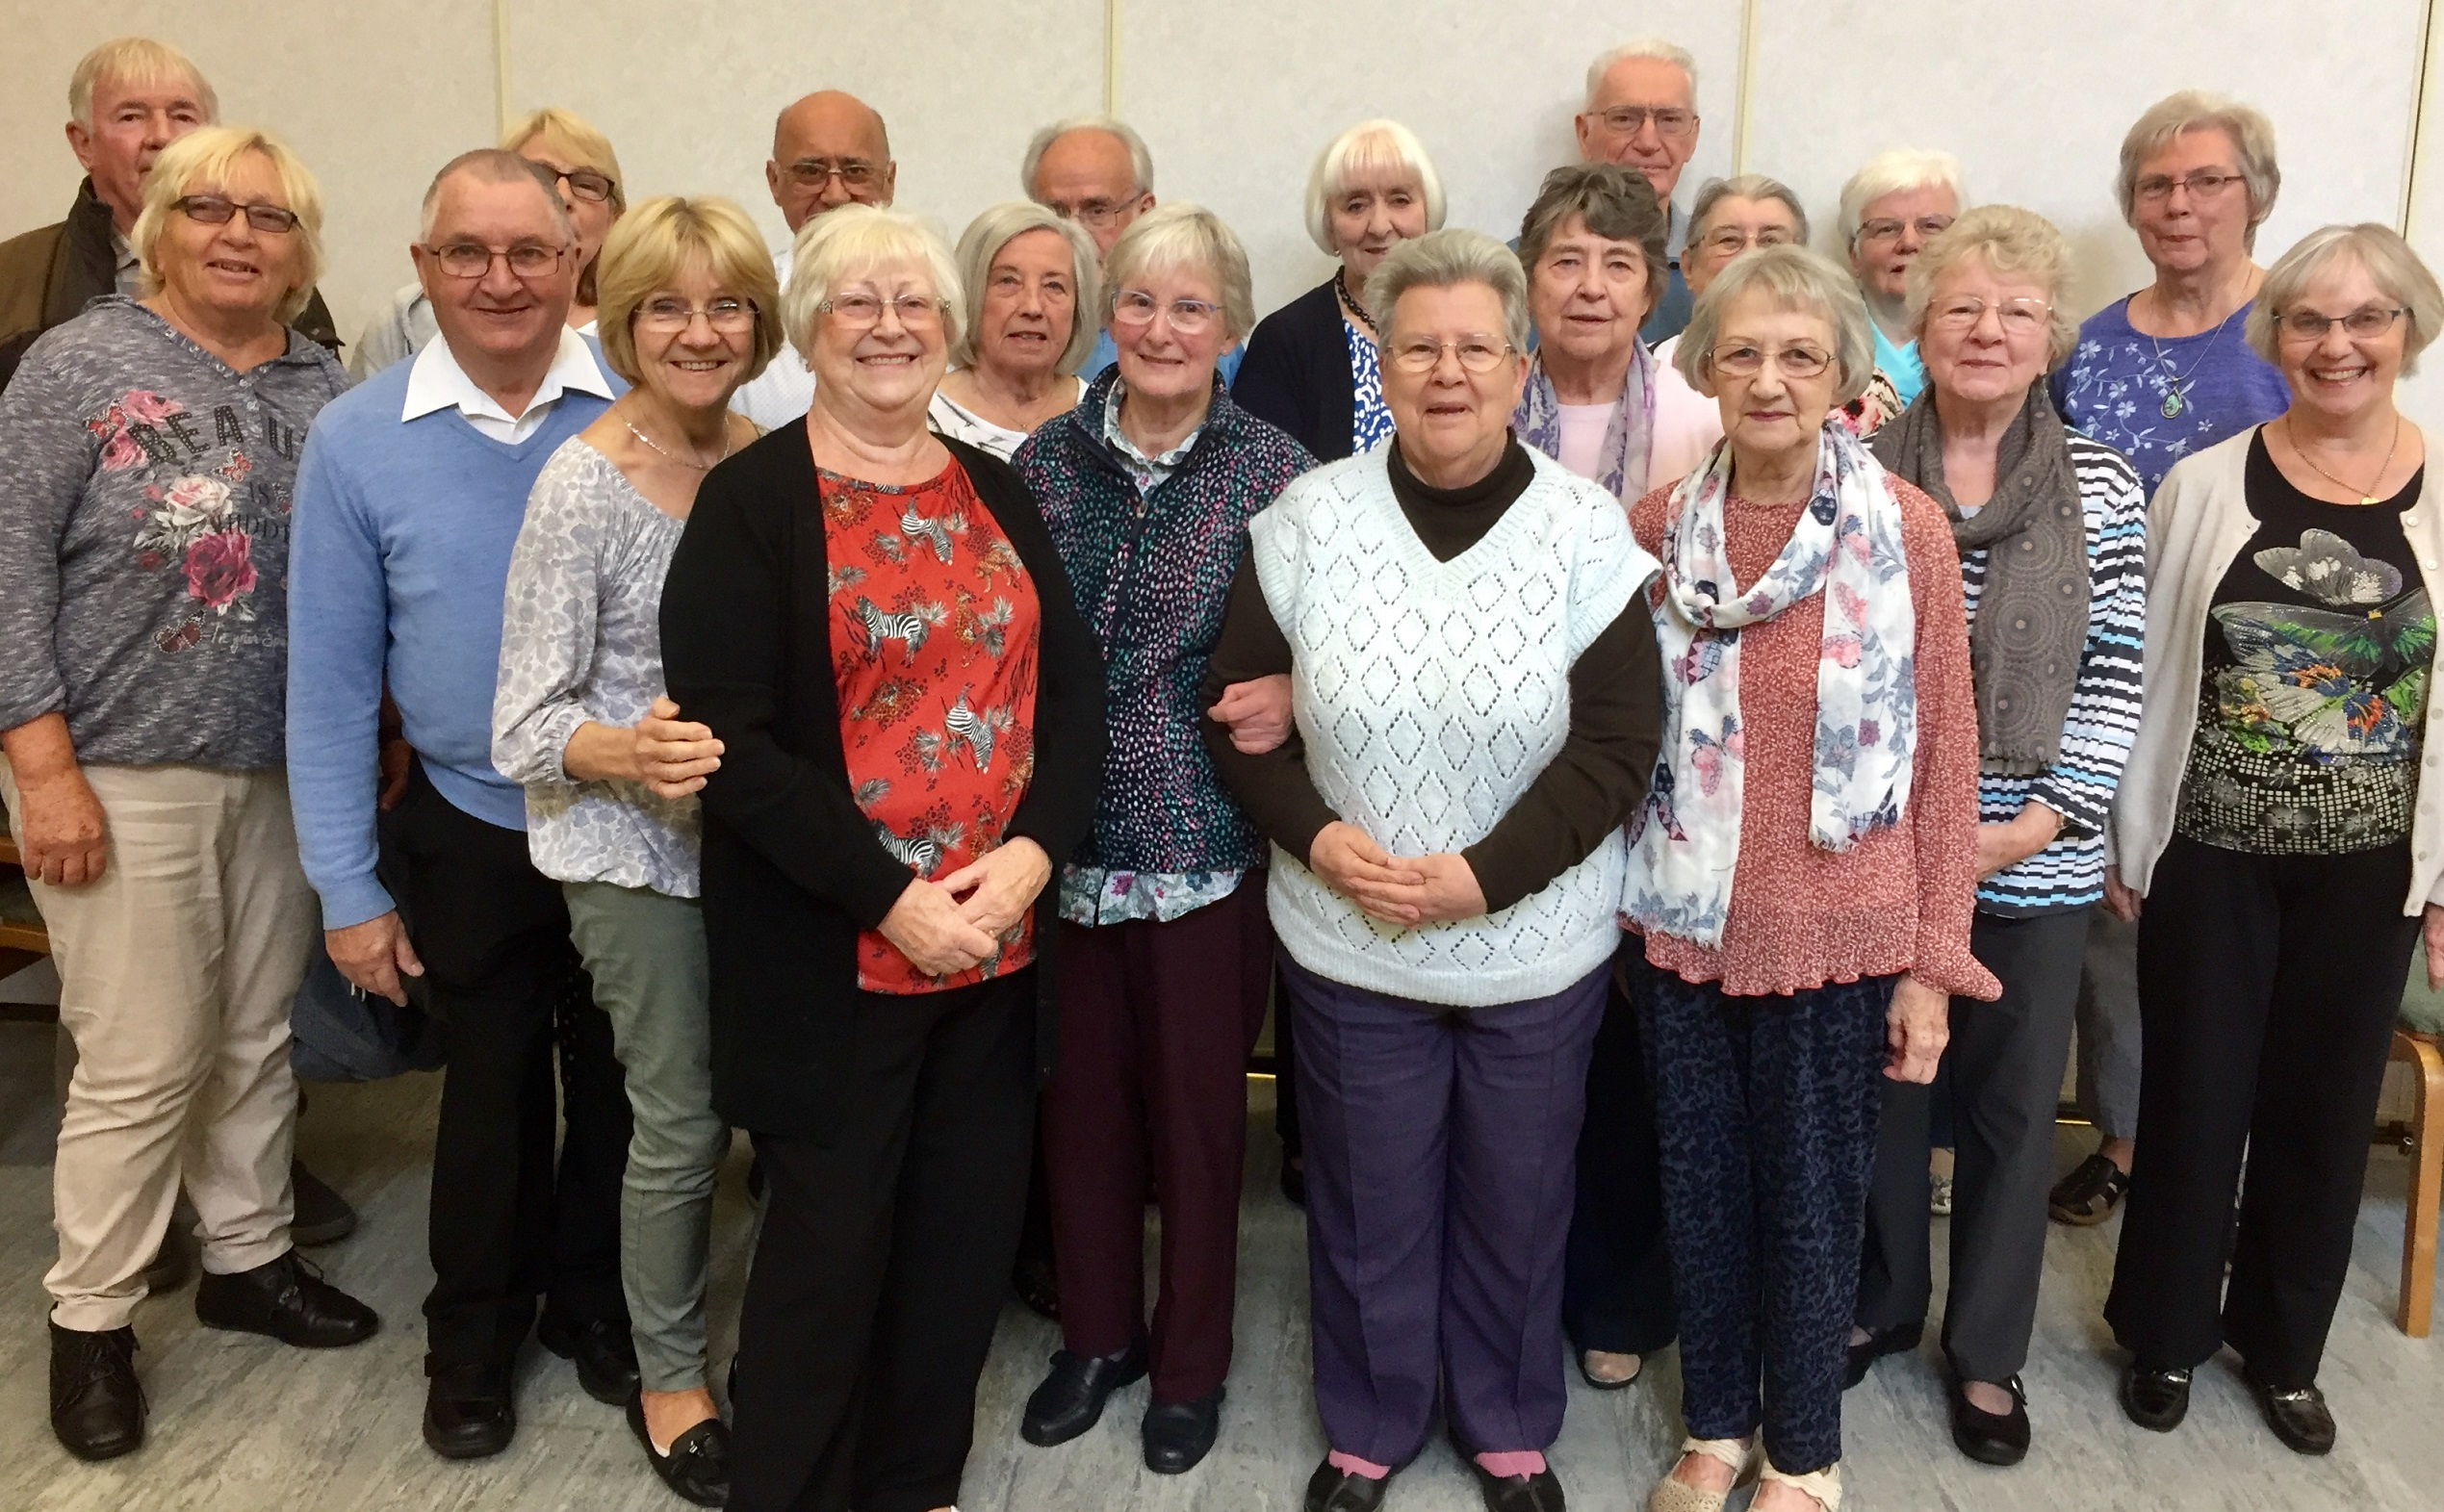 The Country Dancing Group August 2019